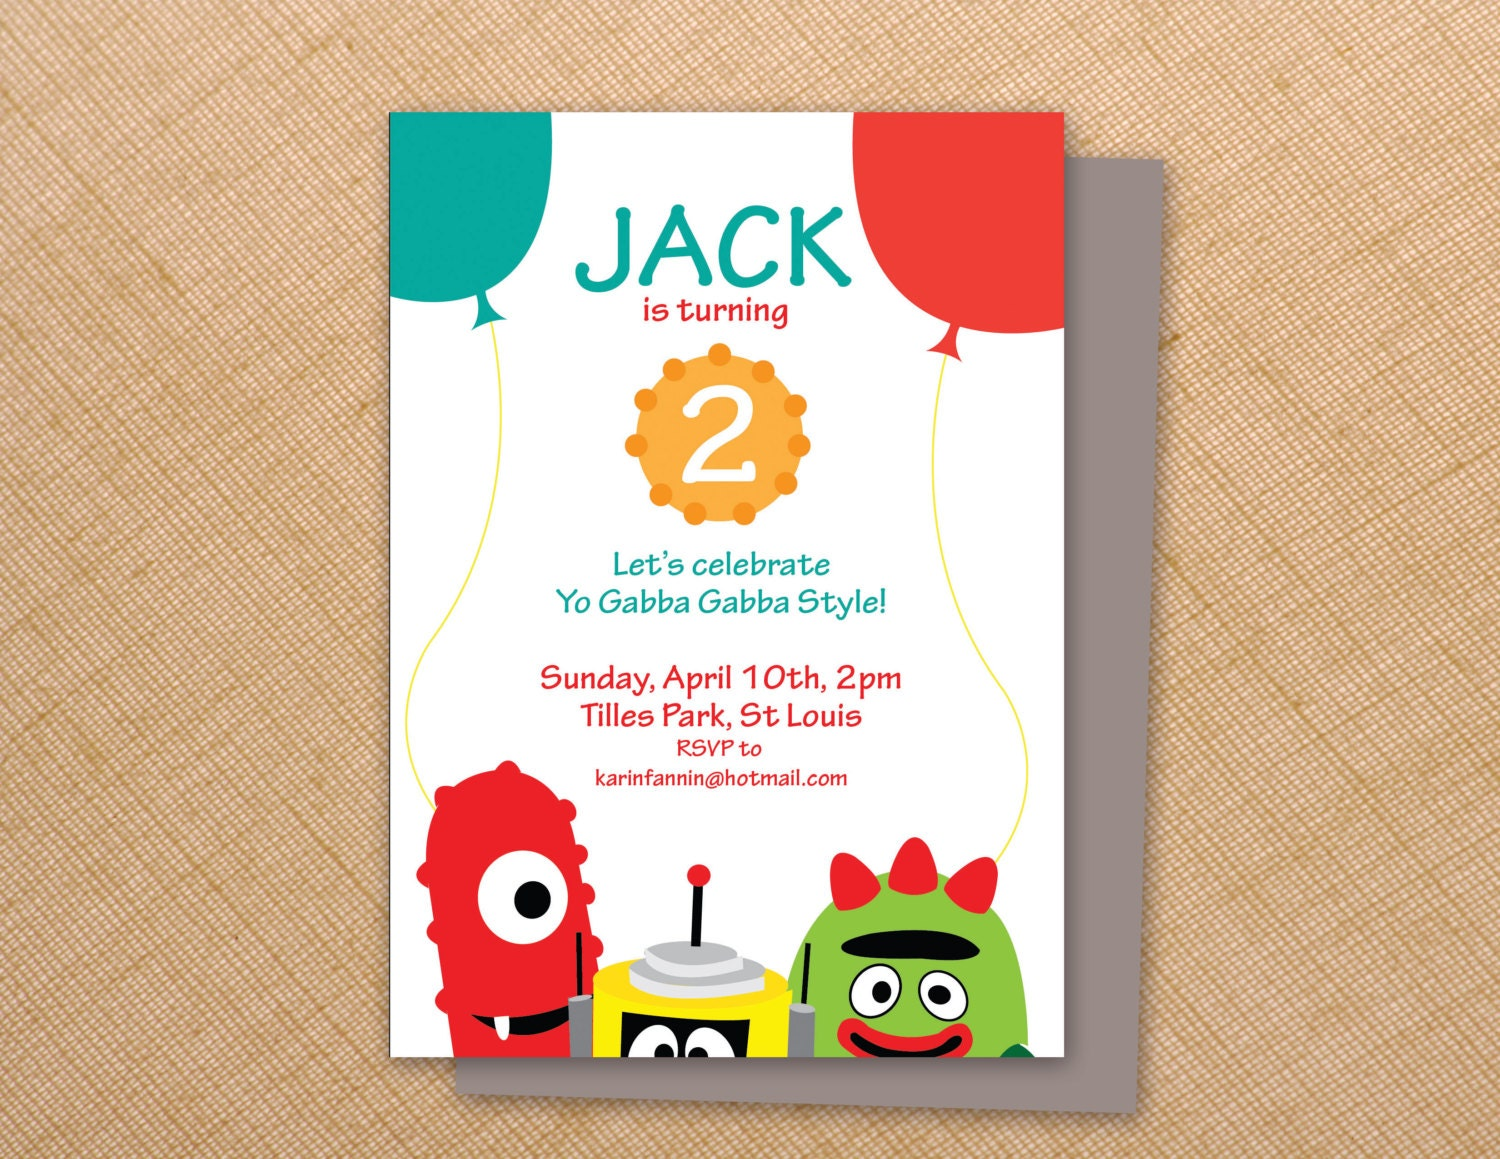 Yo Gabba Gabba Birthday Invites 5x7 Digital File Print At Etsy